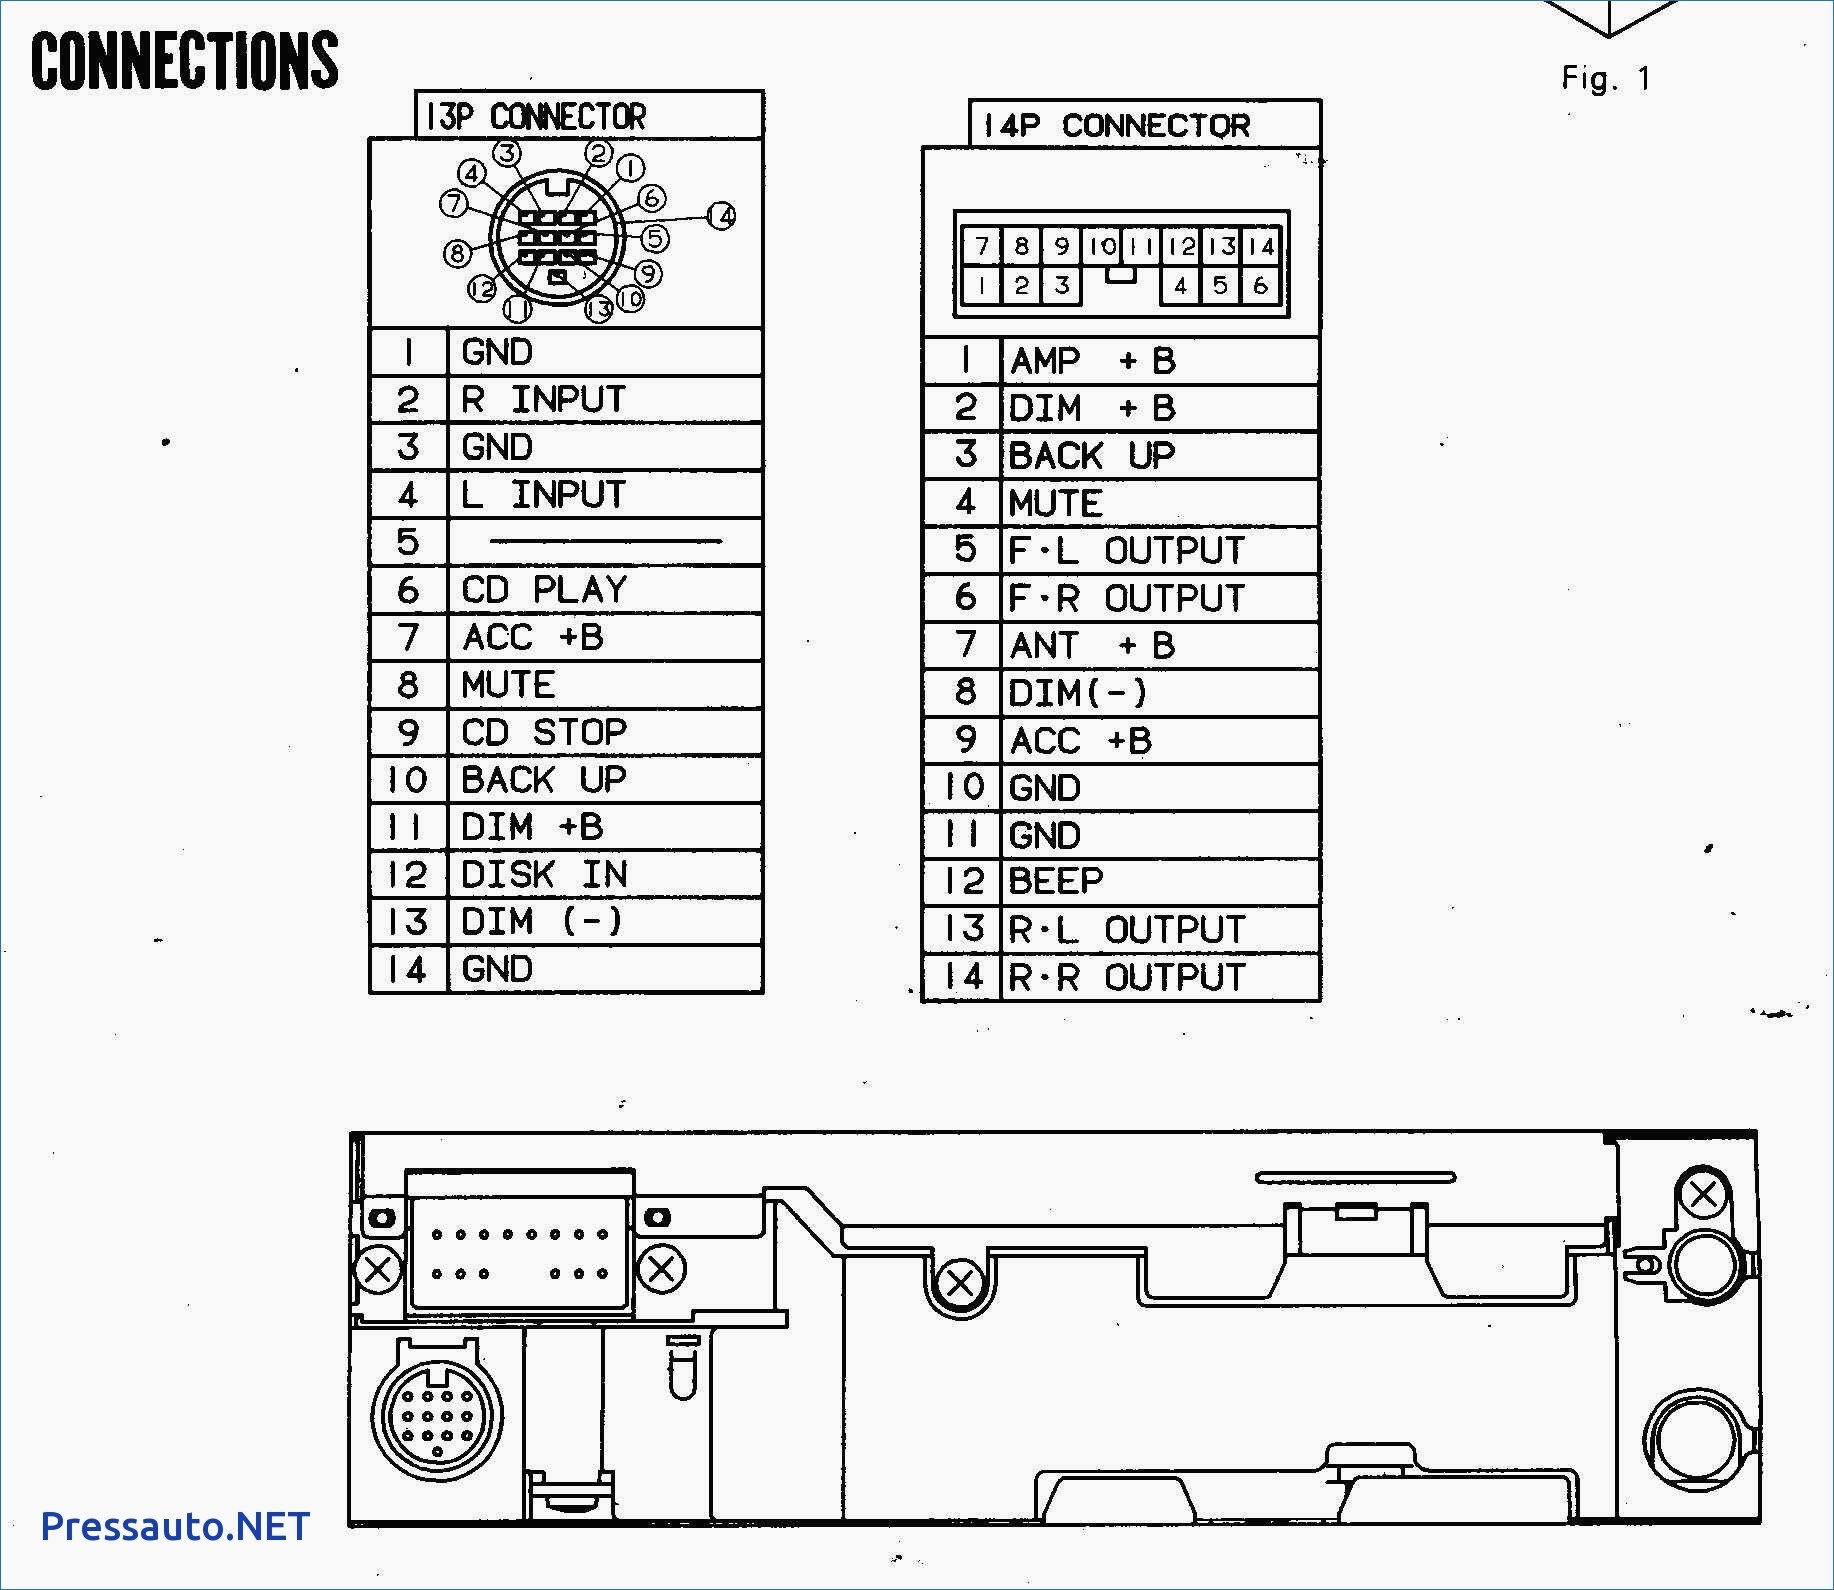 Awesome Gmos 06 Wiring Diagram Mold - The Wire - magnox.info